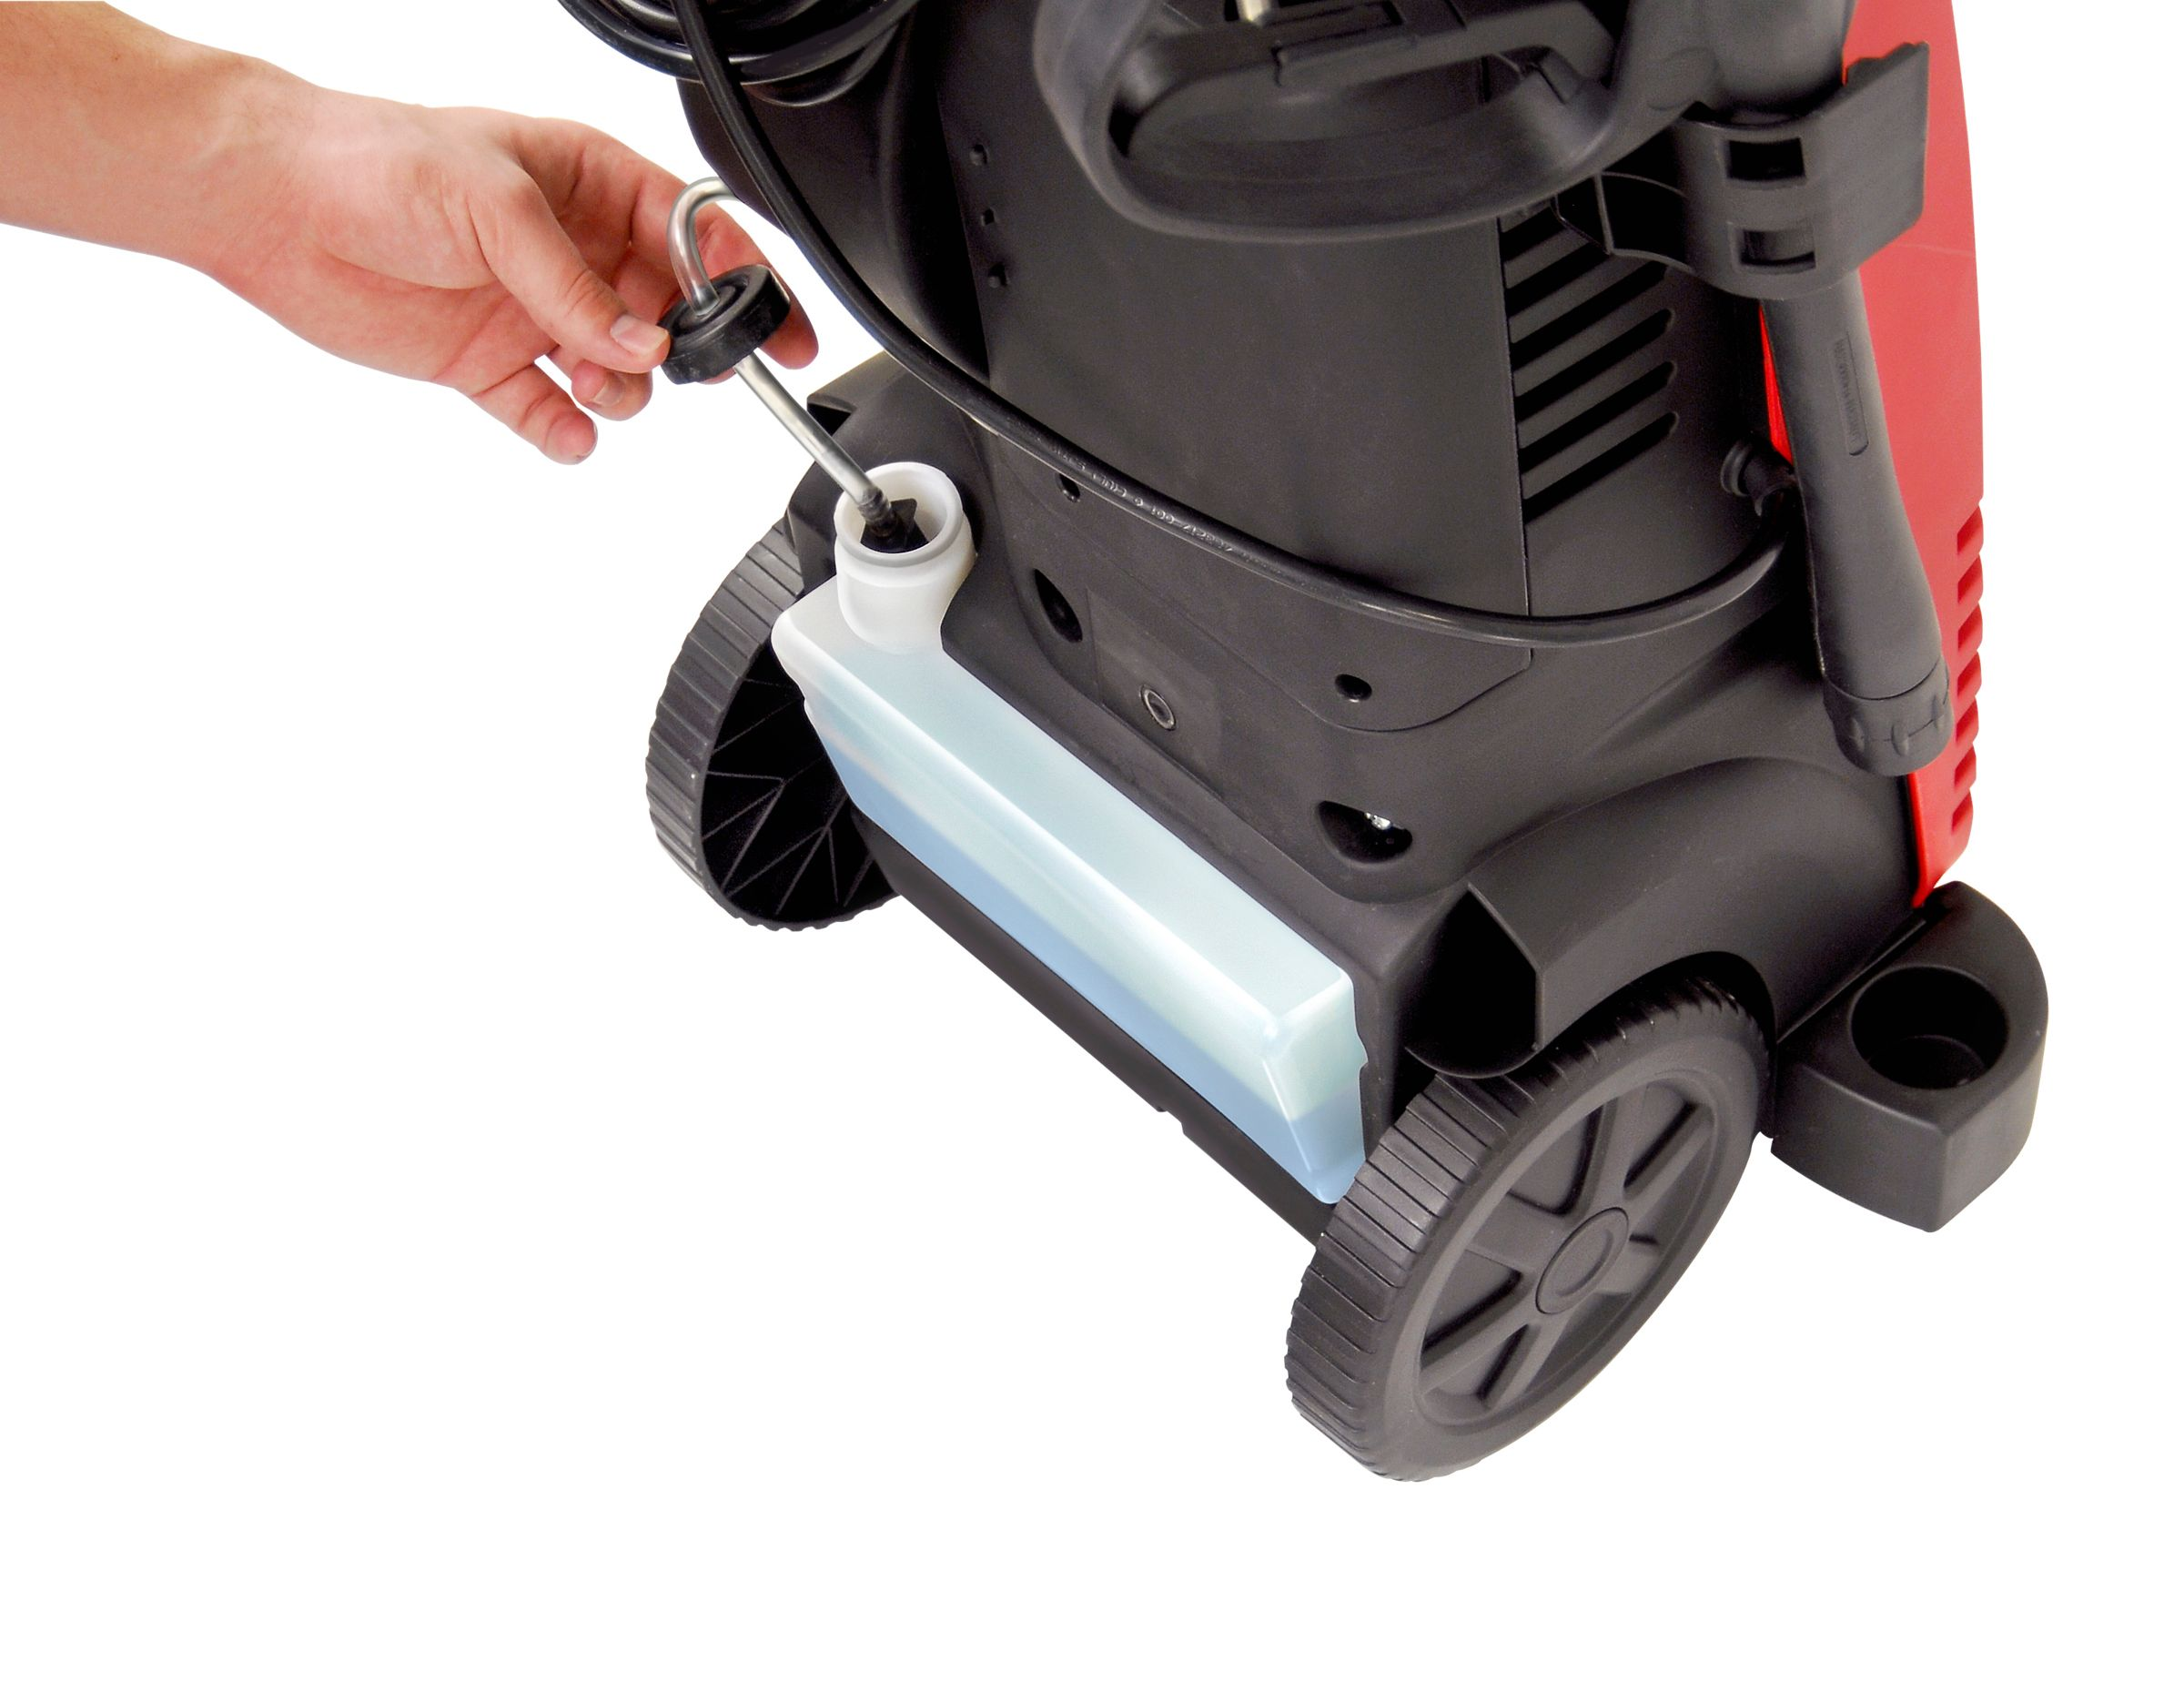 Craftsman 1800 PSI, 1.6 GPM Electric Pressure Washer